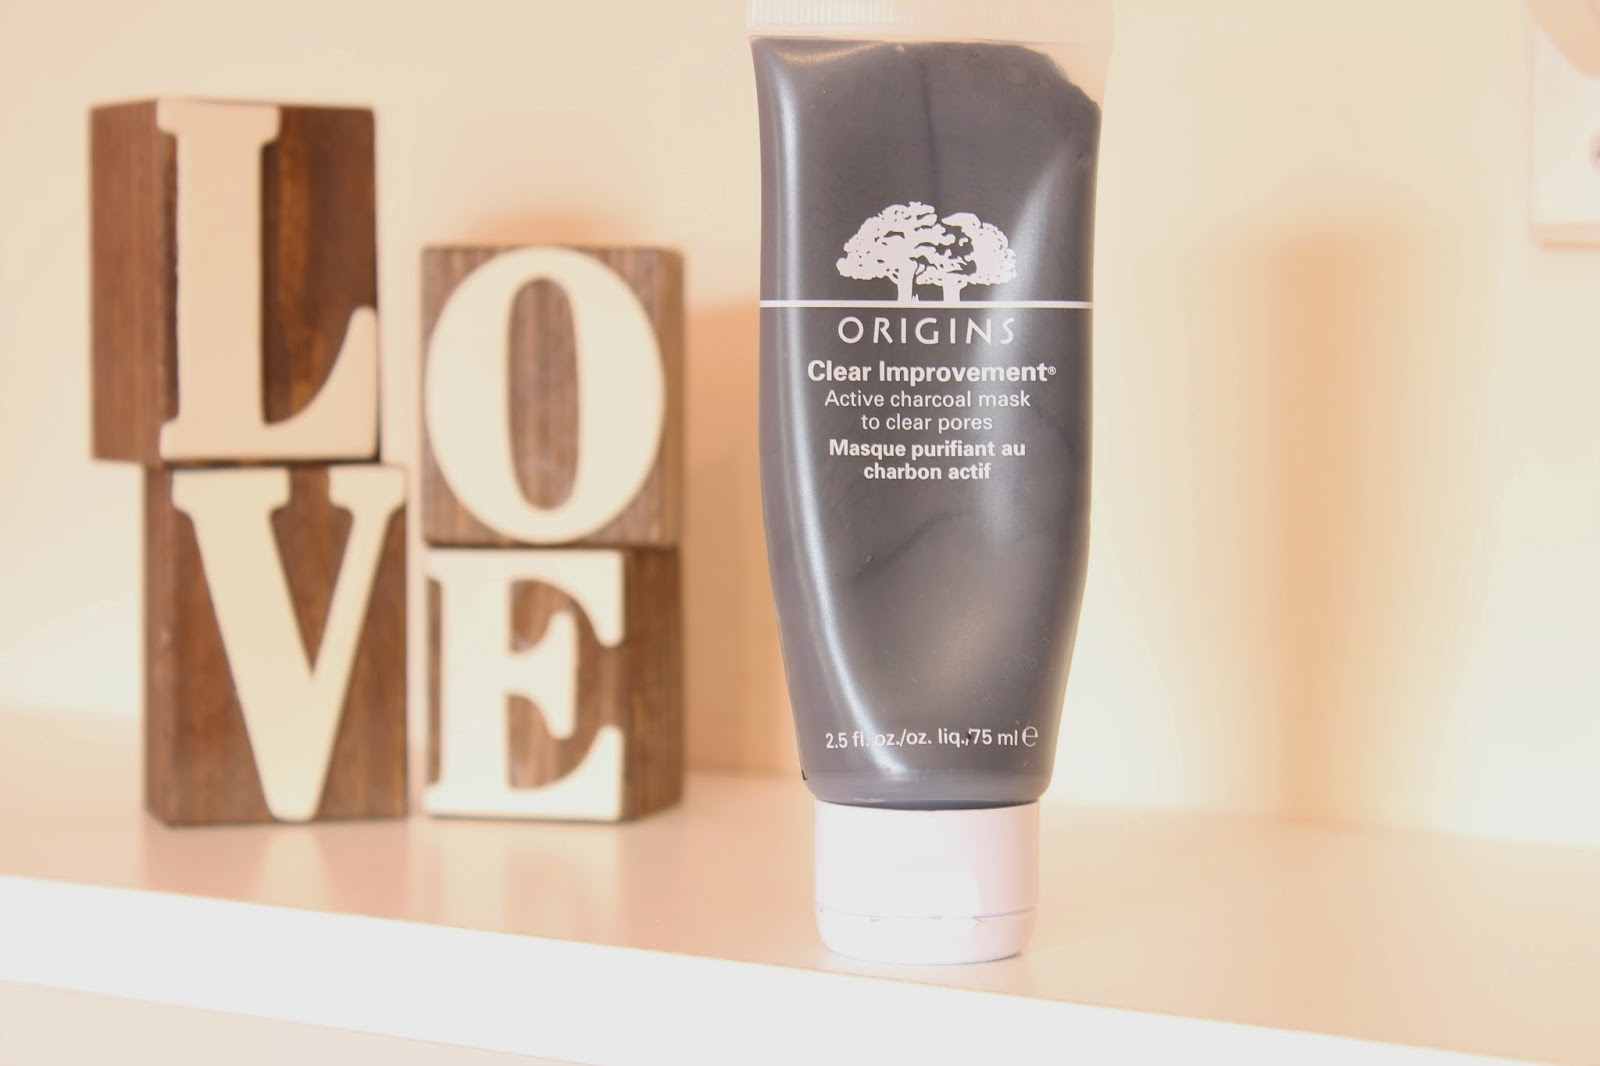 Origins Clear Improvement Active Charcoal Mask // Review